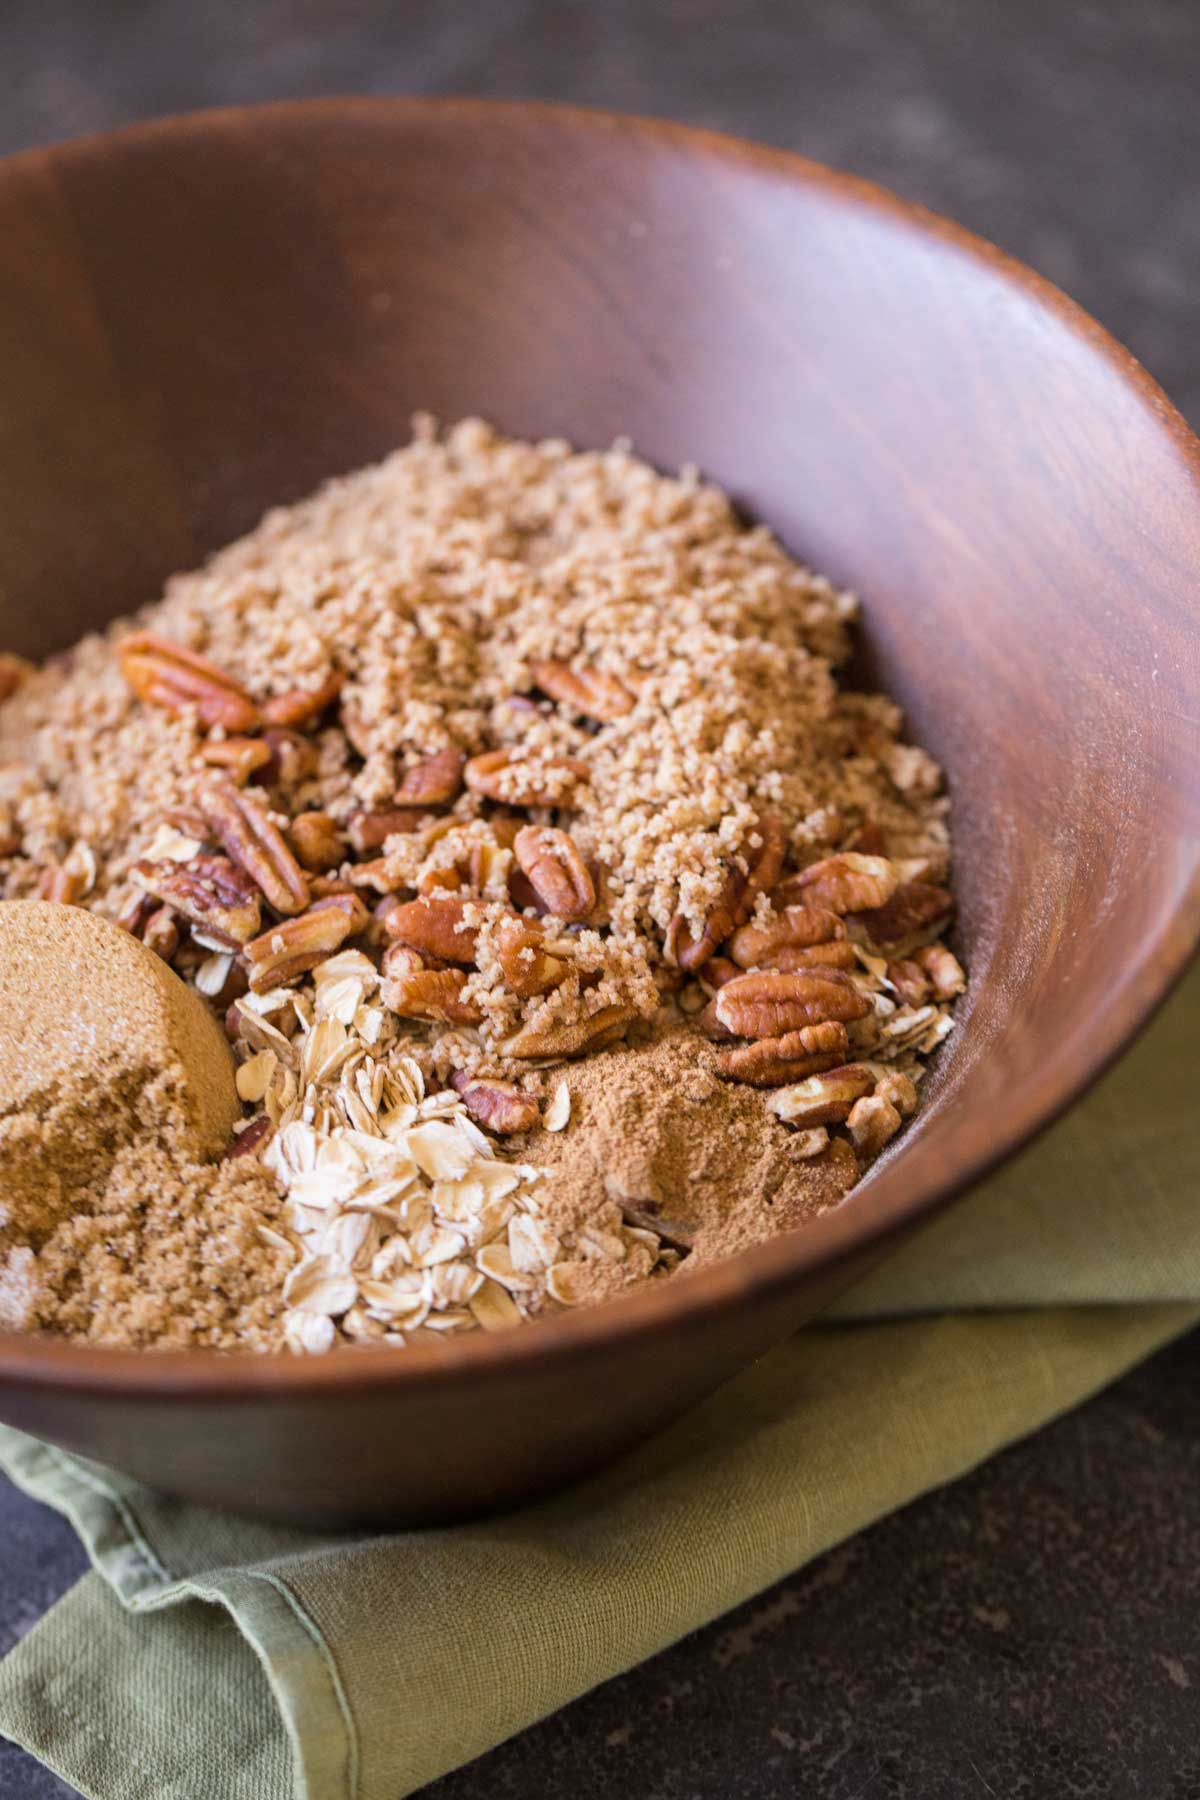 Ingredients for the Gingerbread Spice Granola in a large wood mixing bowl.